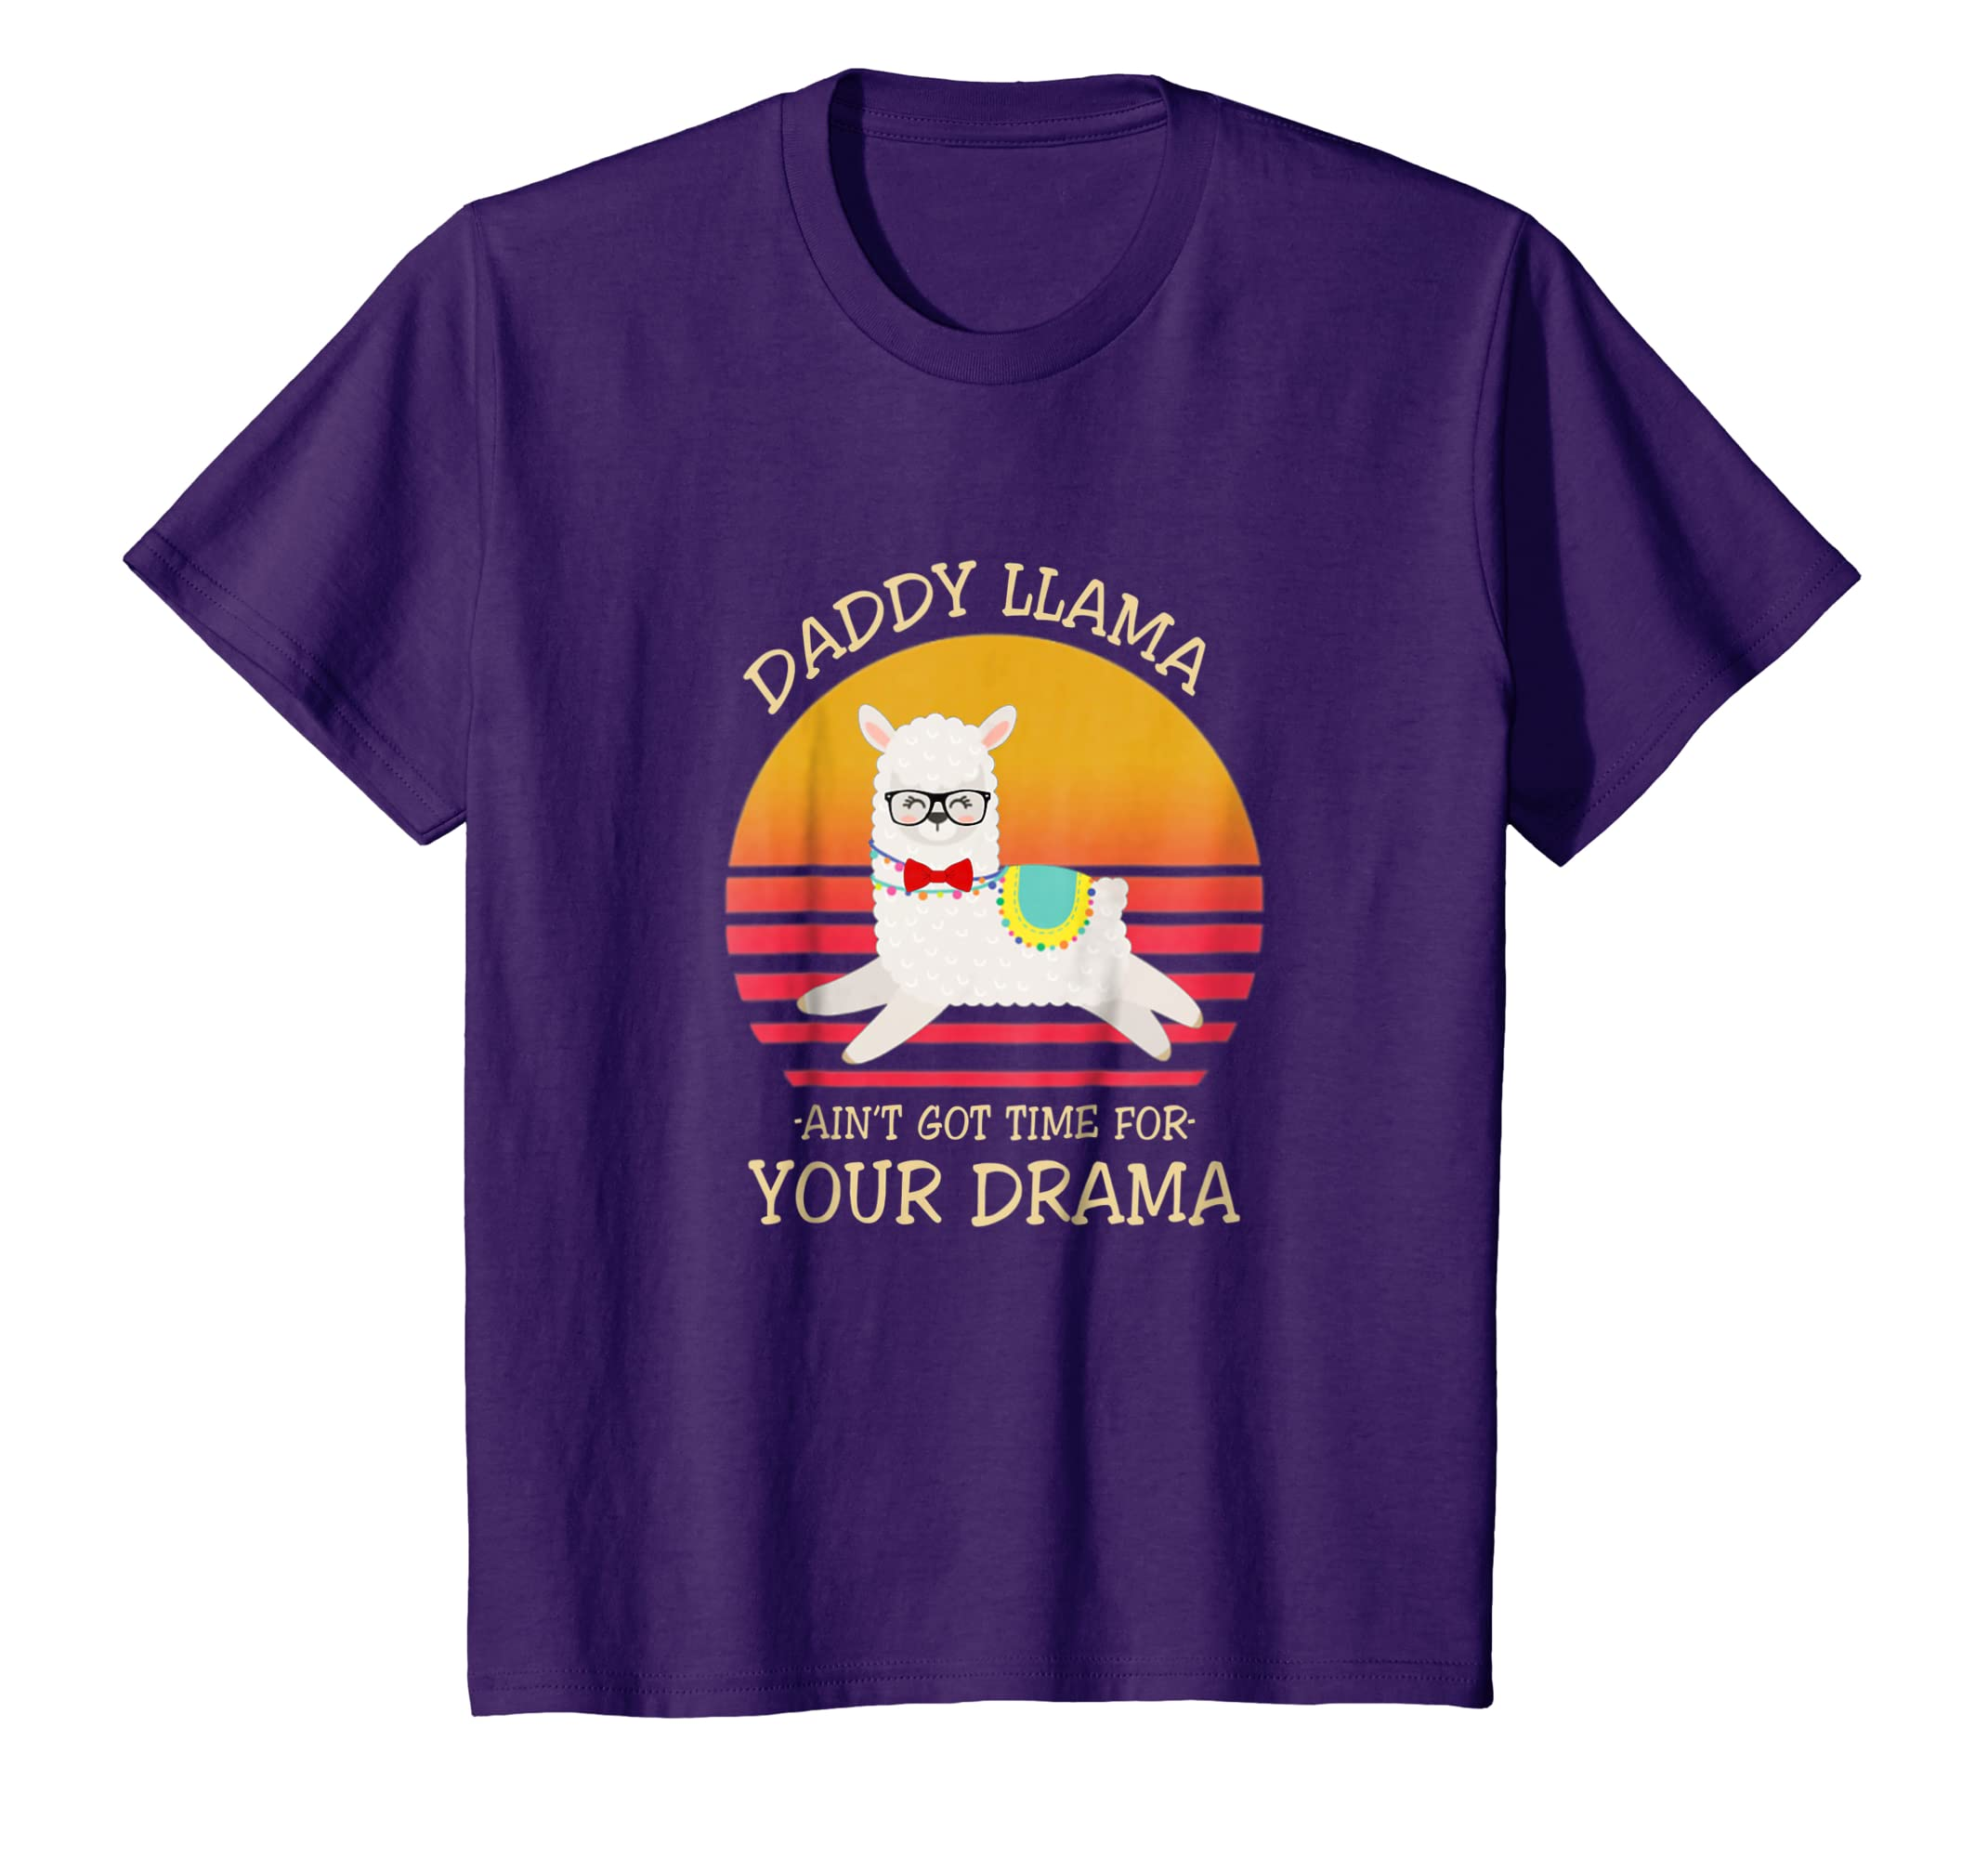 af08fdc4 Amazon.com: Daddy Llama Ain'T Got Time For Your Drama Funny T-Shirt Gift:  Clothing